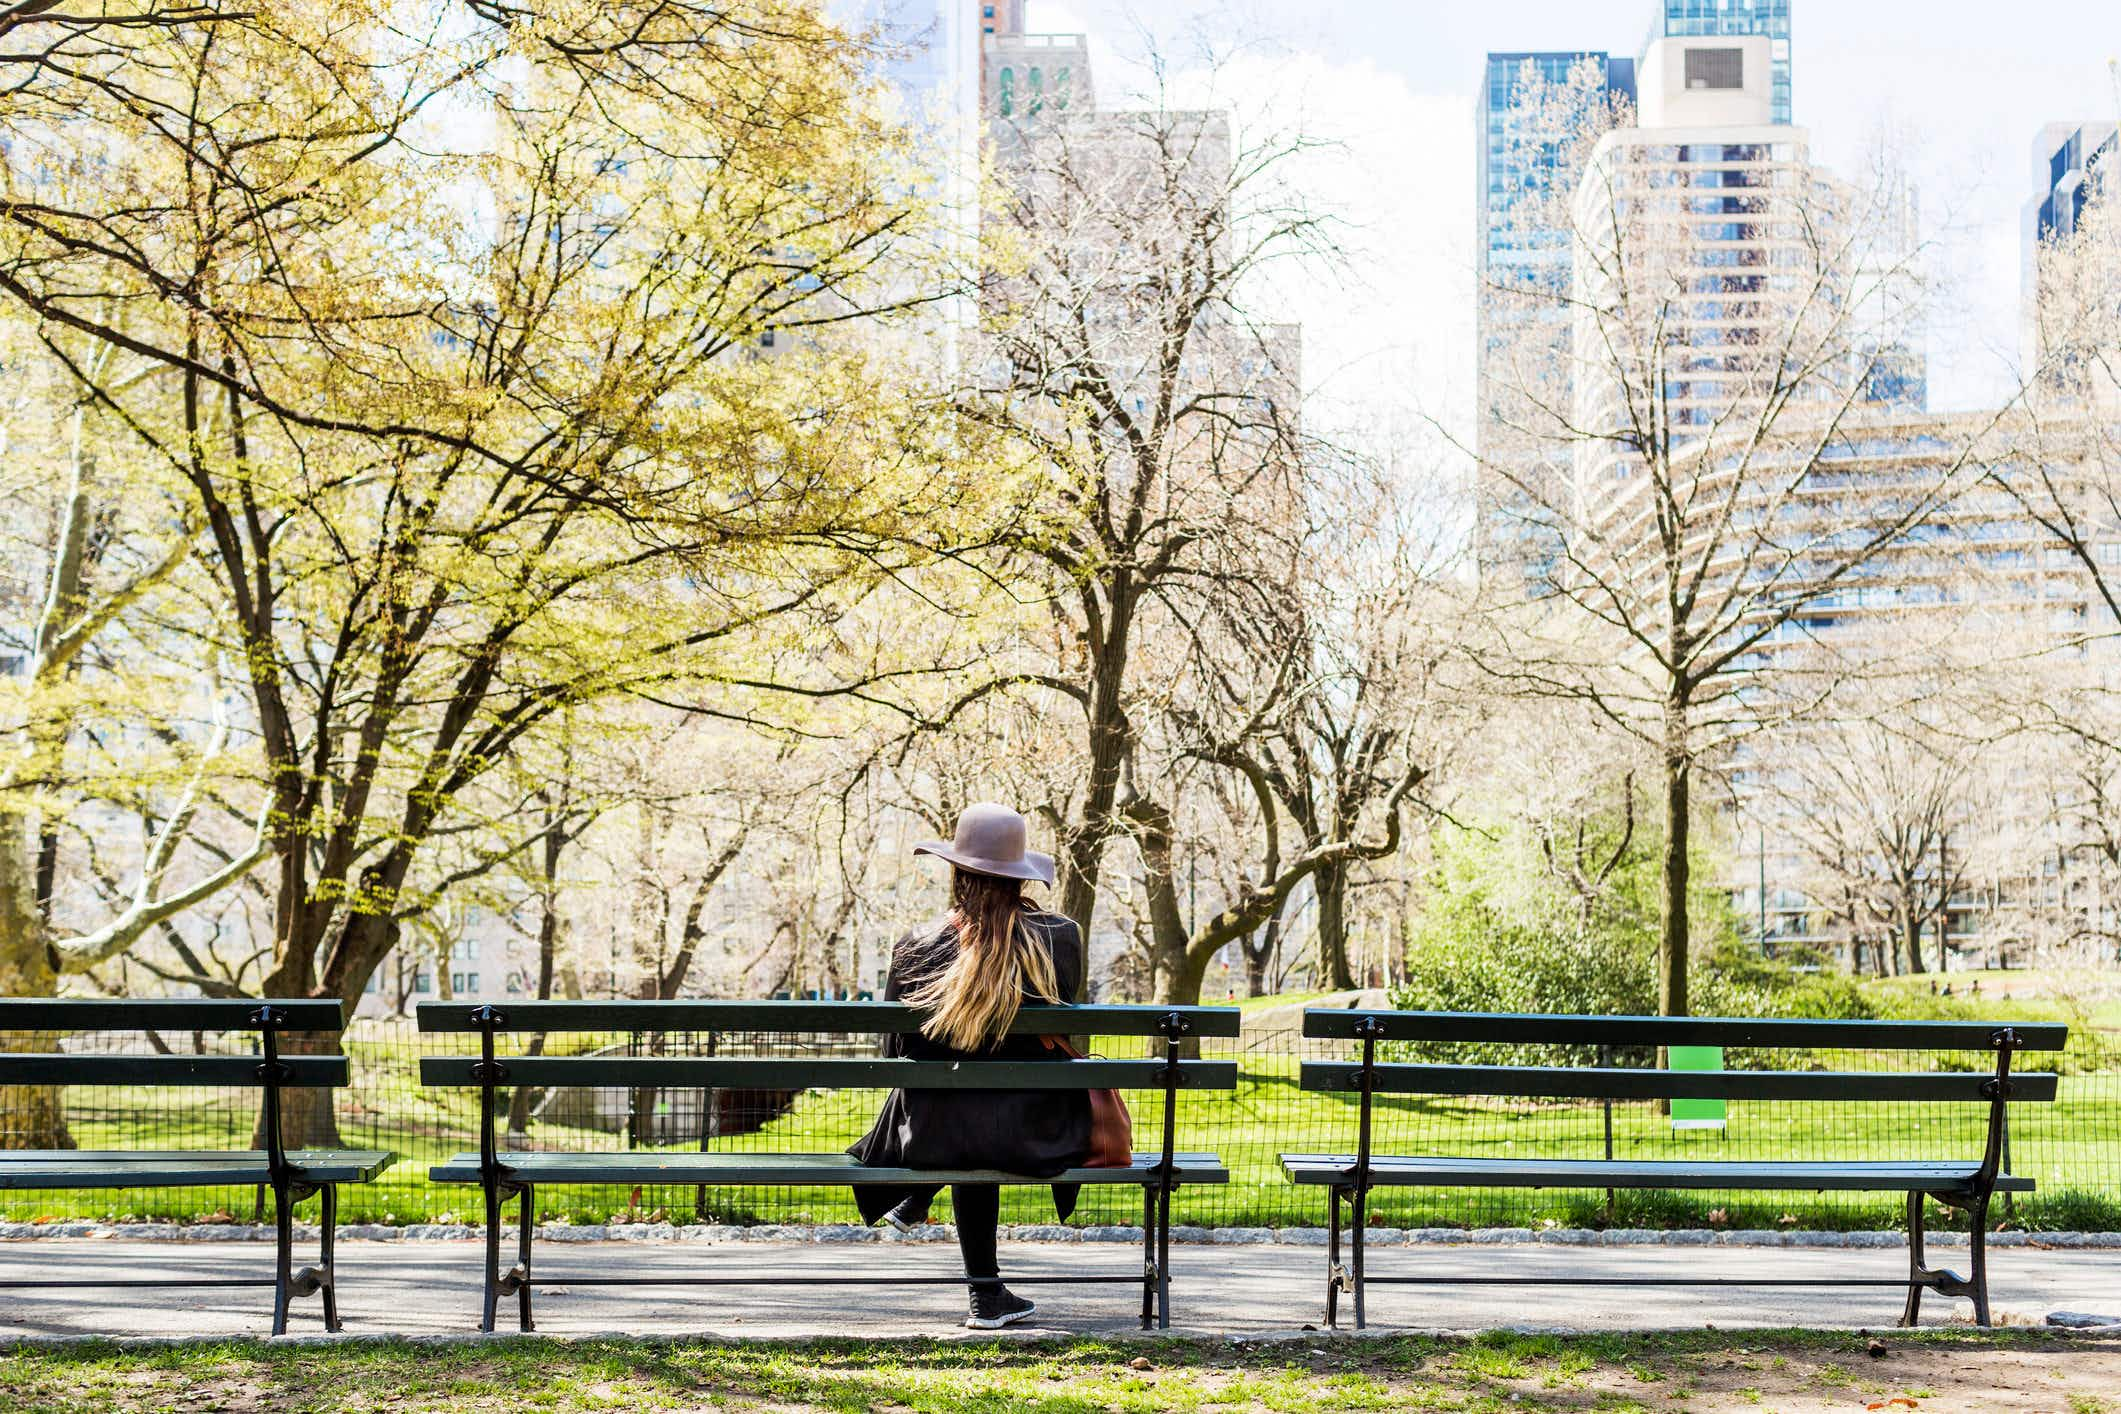 New York's Central Park is now car-free